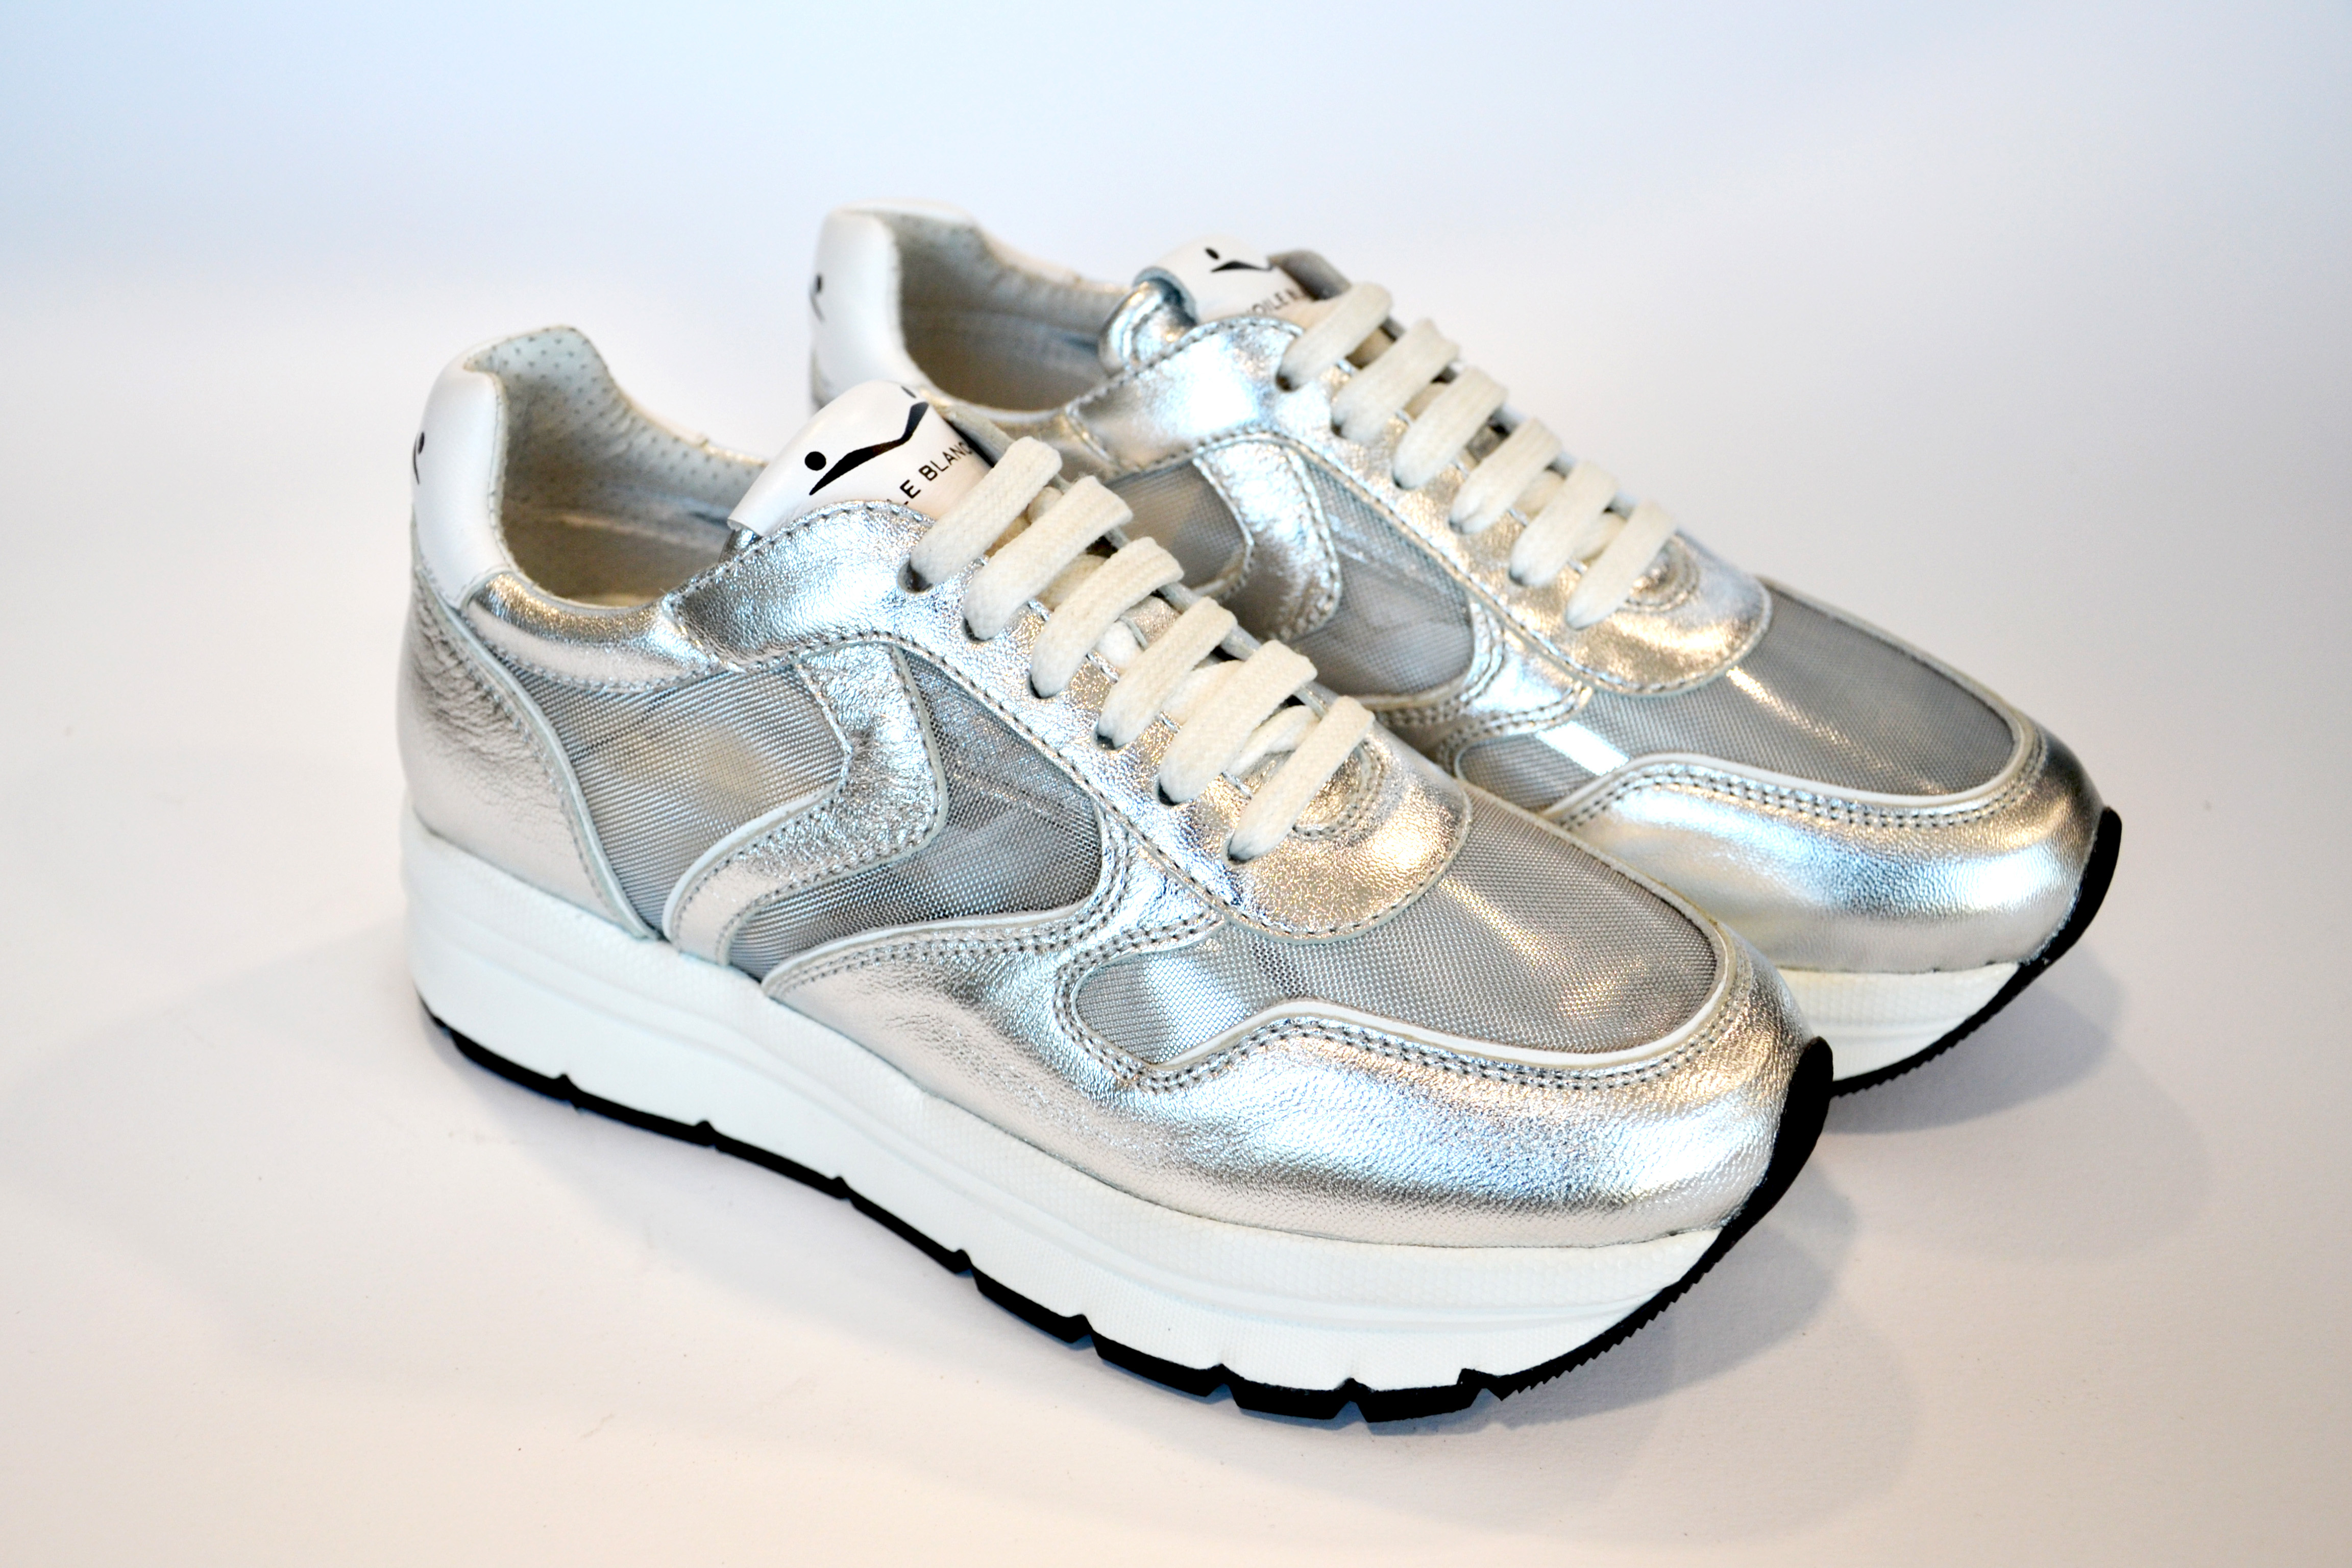 Voile Blanche Scarpa Donna Sneakers May Mesh Nappa Lux/Tulle Argento 0012013506.03.0Q04